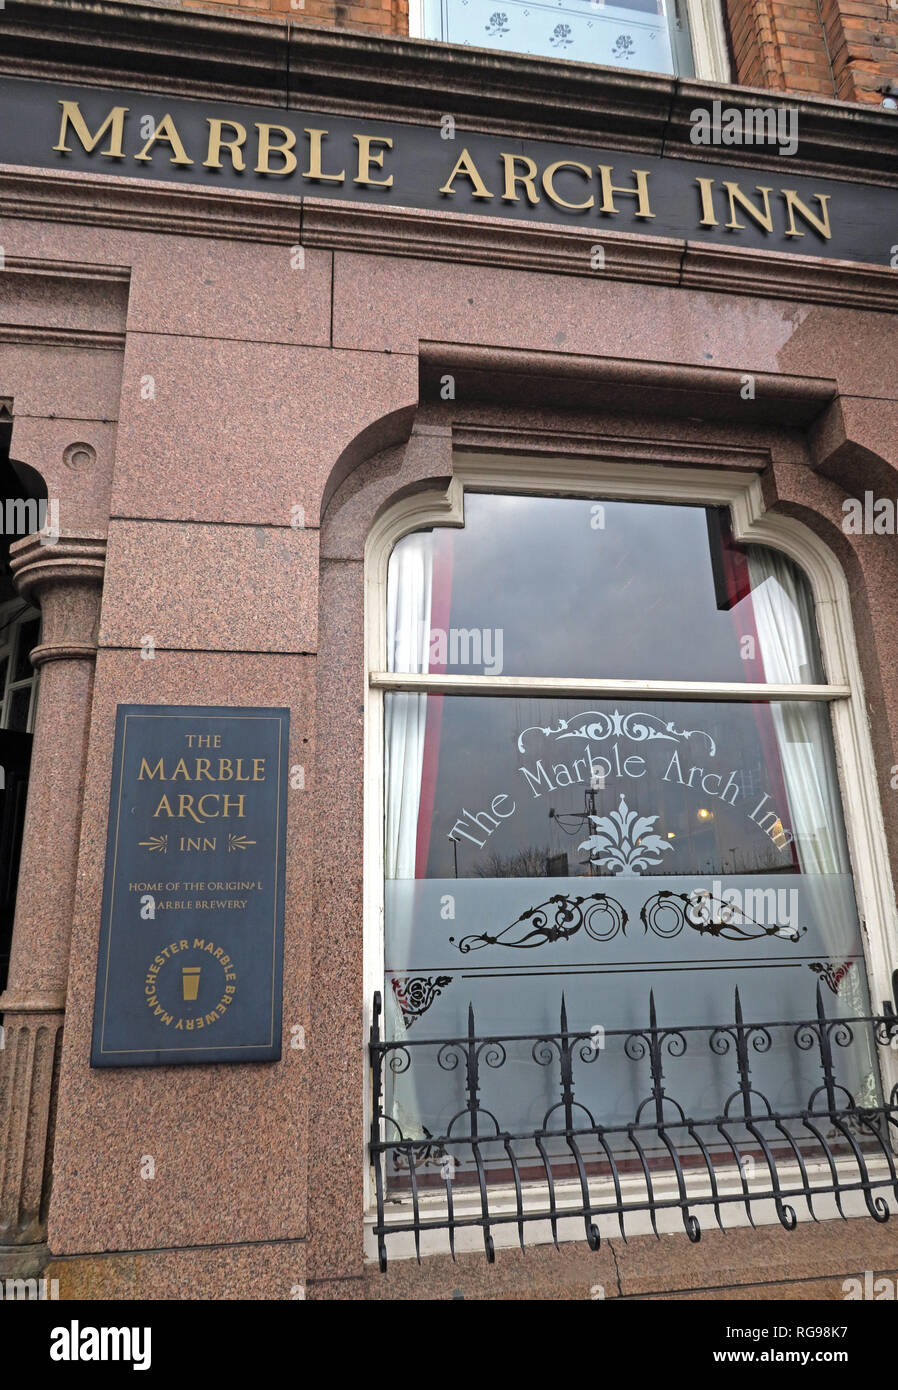 The Marble Arch Inn, Marble Brewery, 73 Rochdale Road, Manchester City Centre, North West England, UK,  M4 4HY Stock Photo